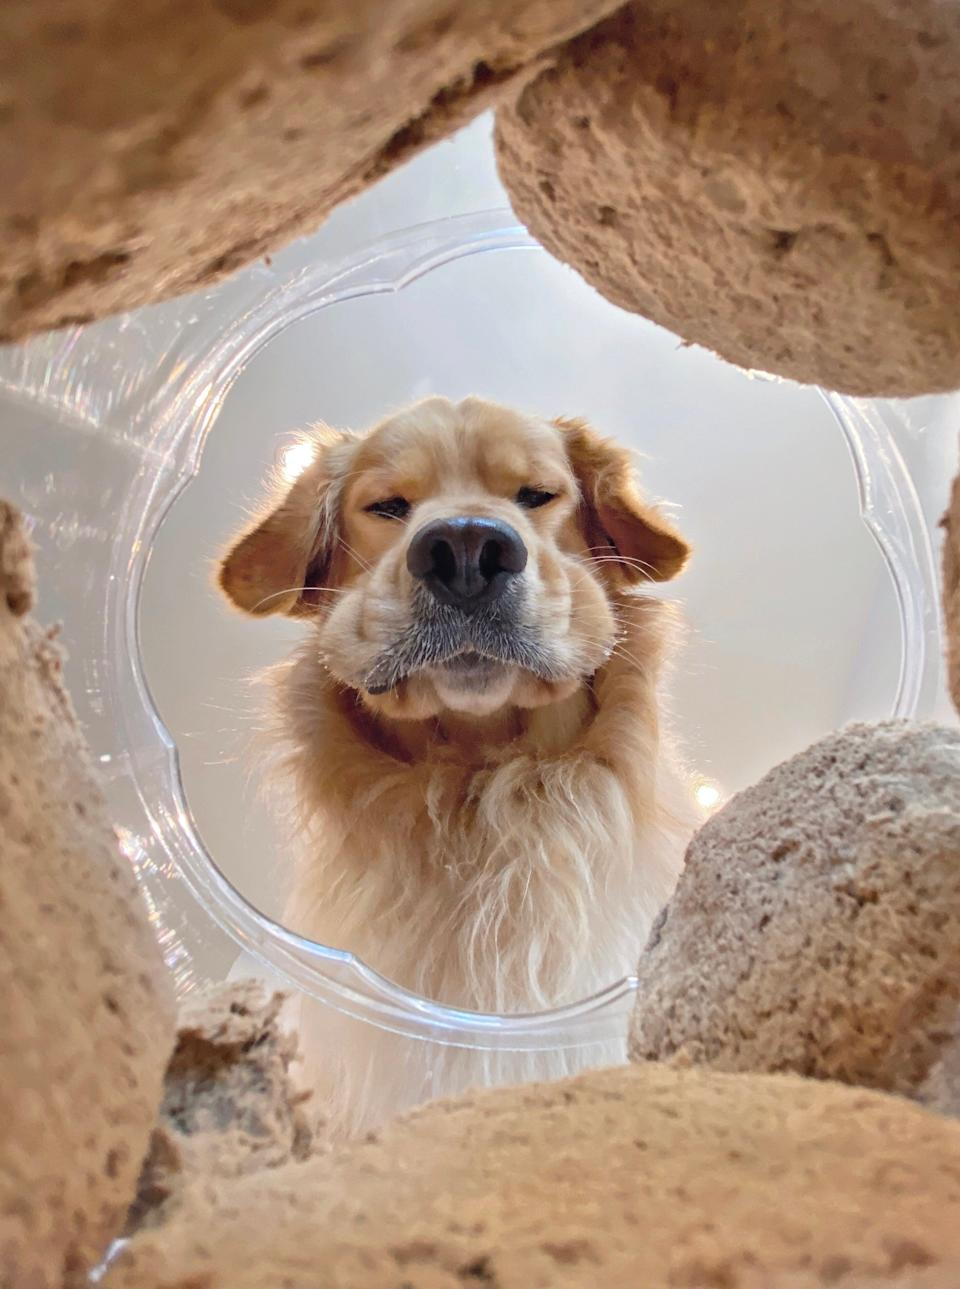 Mars Petcare Comedy Pet Photo Awards (Photo: ©Candice-Sedighan/Mars Petcare Comedy Pet Photo Awards 2020)